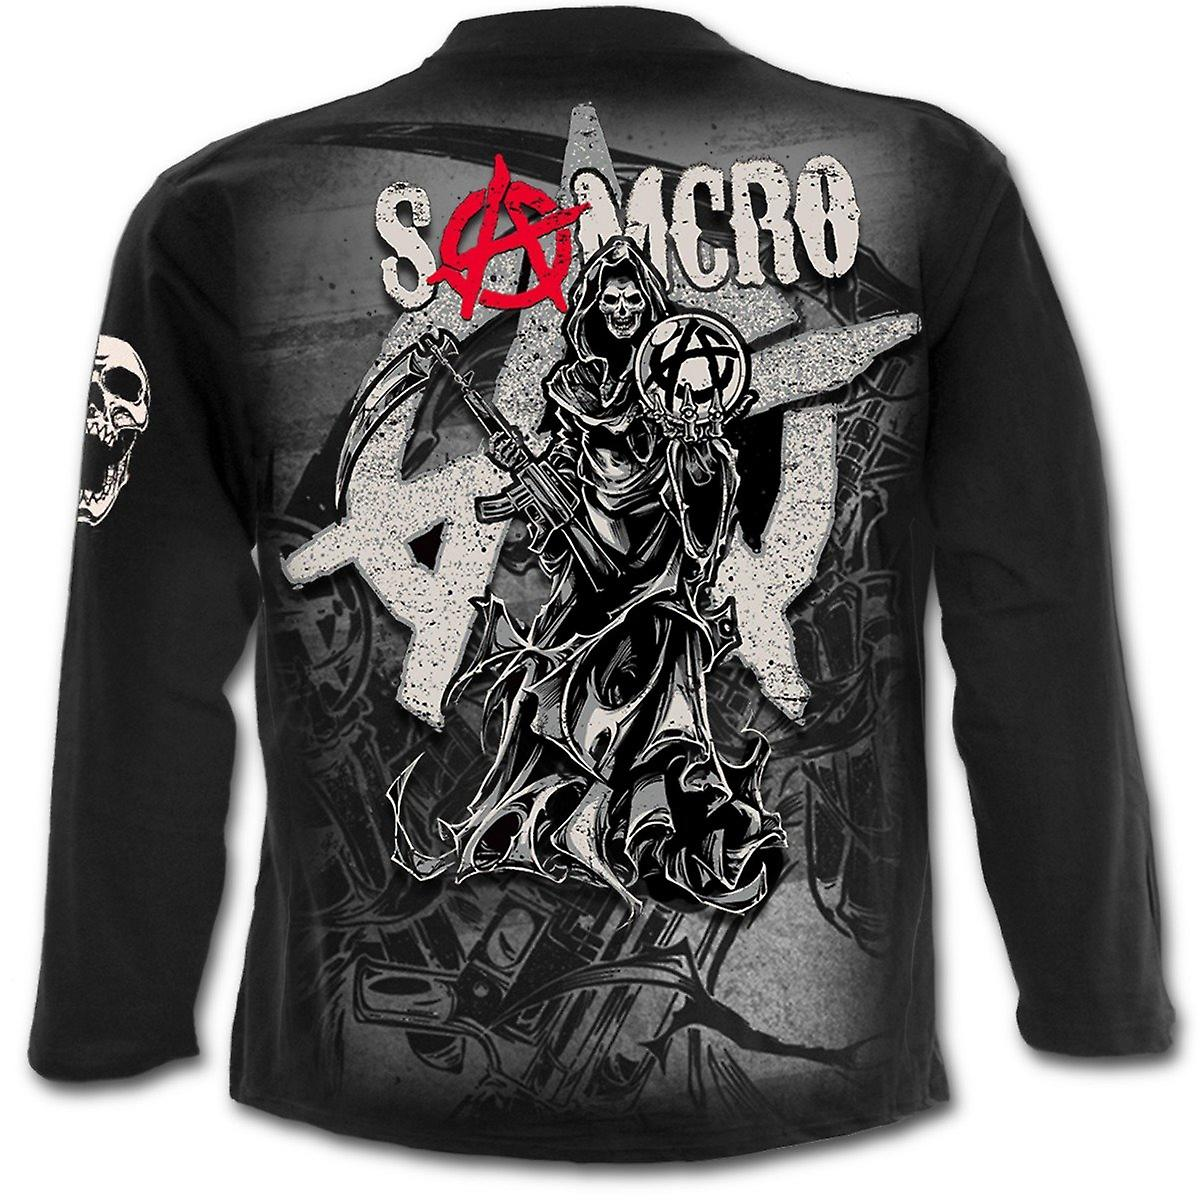 Spiral - REAPER MONTAGE - Sons of Anarchy Long Sleeve T-Shirt Black